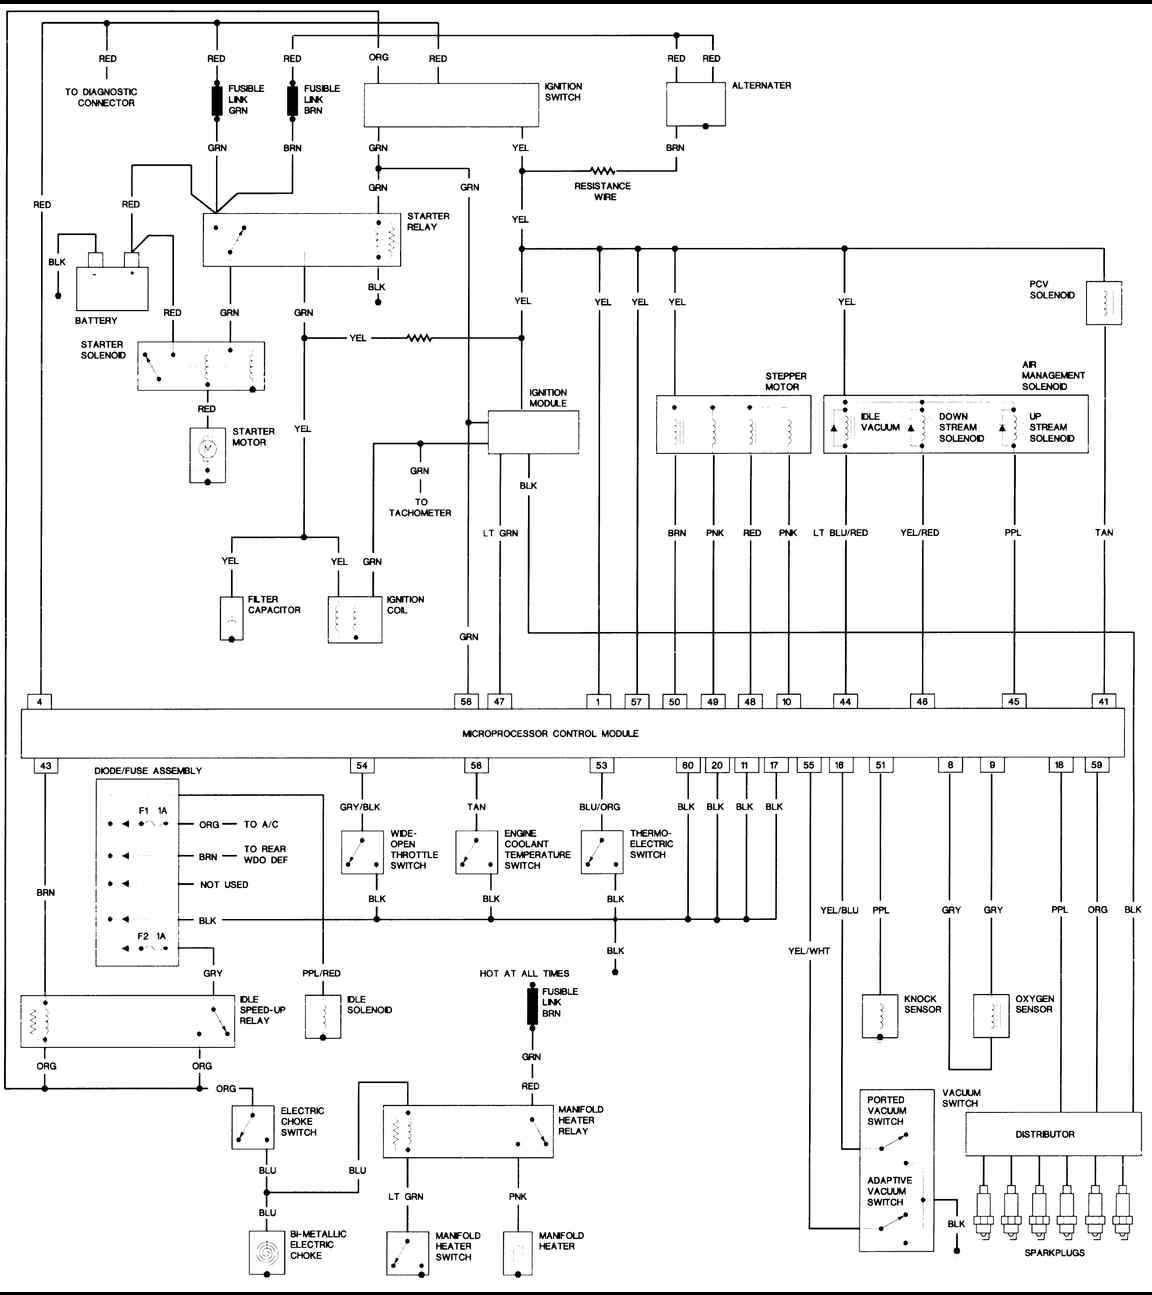 hight resolution of 1987 jeep yj wiring diagram wiring diagram inside 87 jeep yj starter solenoid wiring diagram 87 jeep wiring diagram